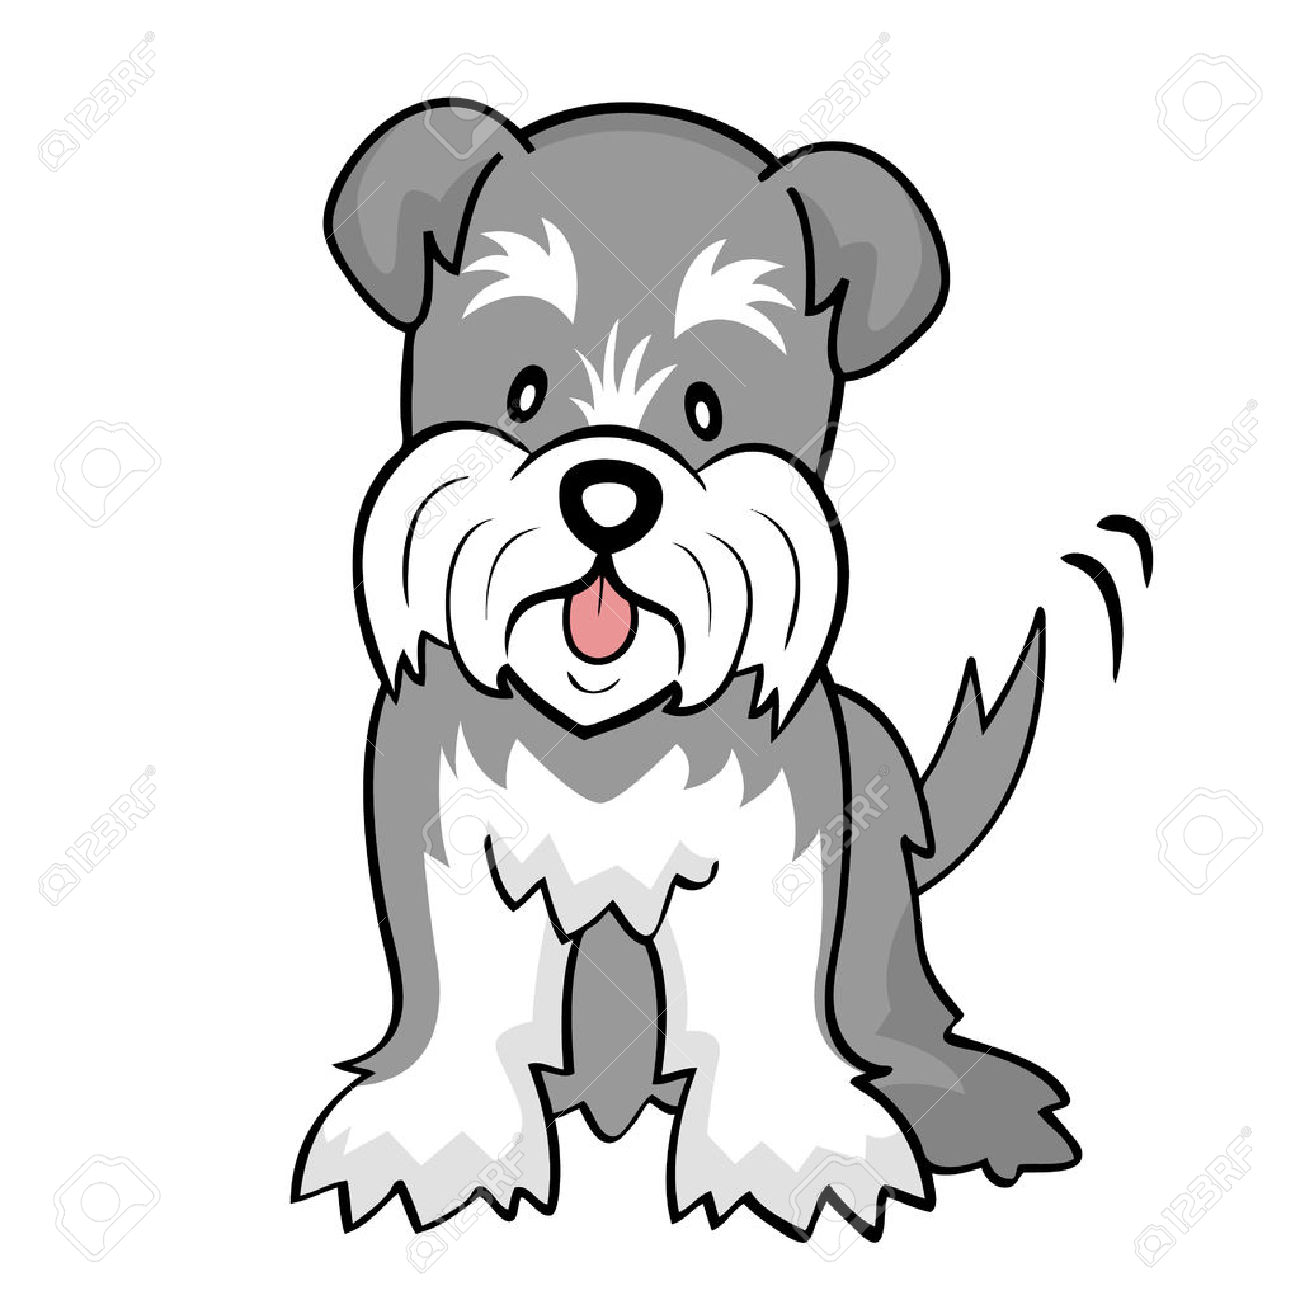 490 Schnauzer Stock Illustrations, Cliparts And Royalty Free.